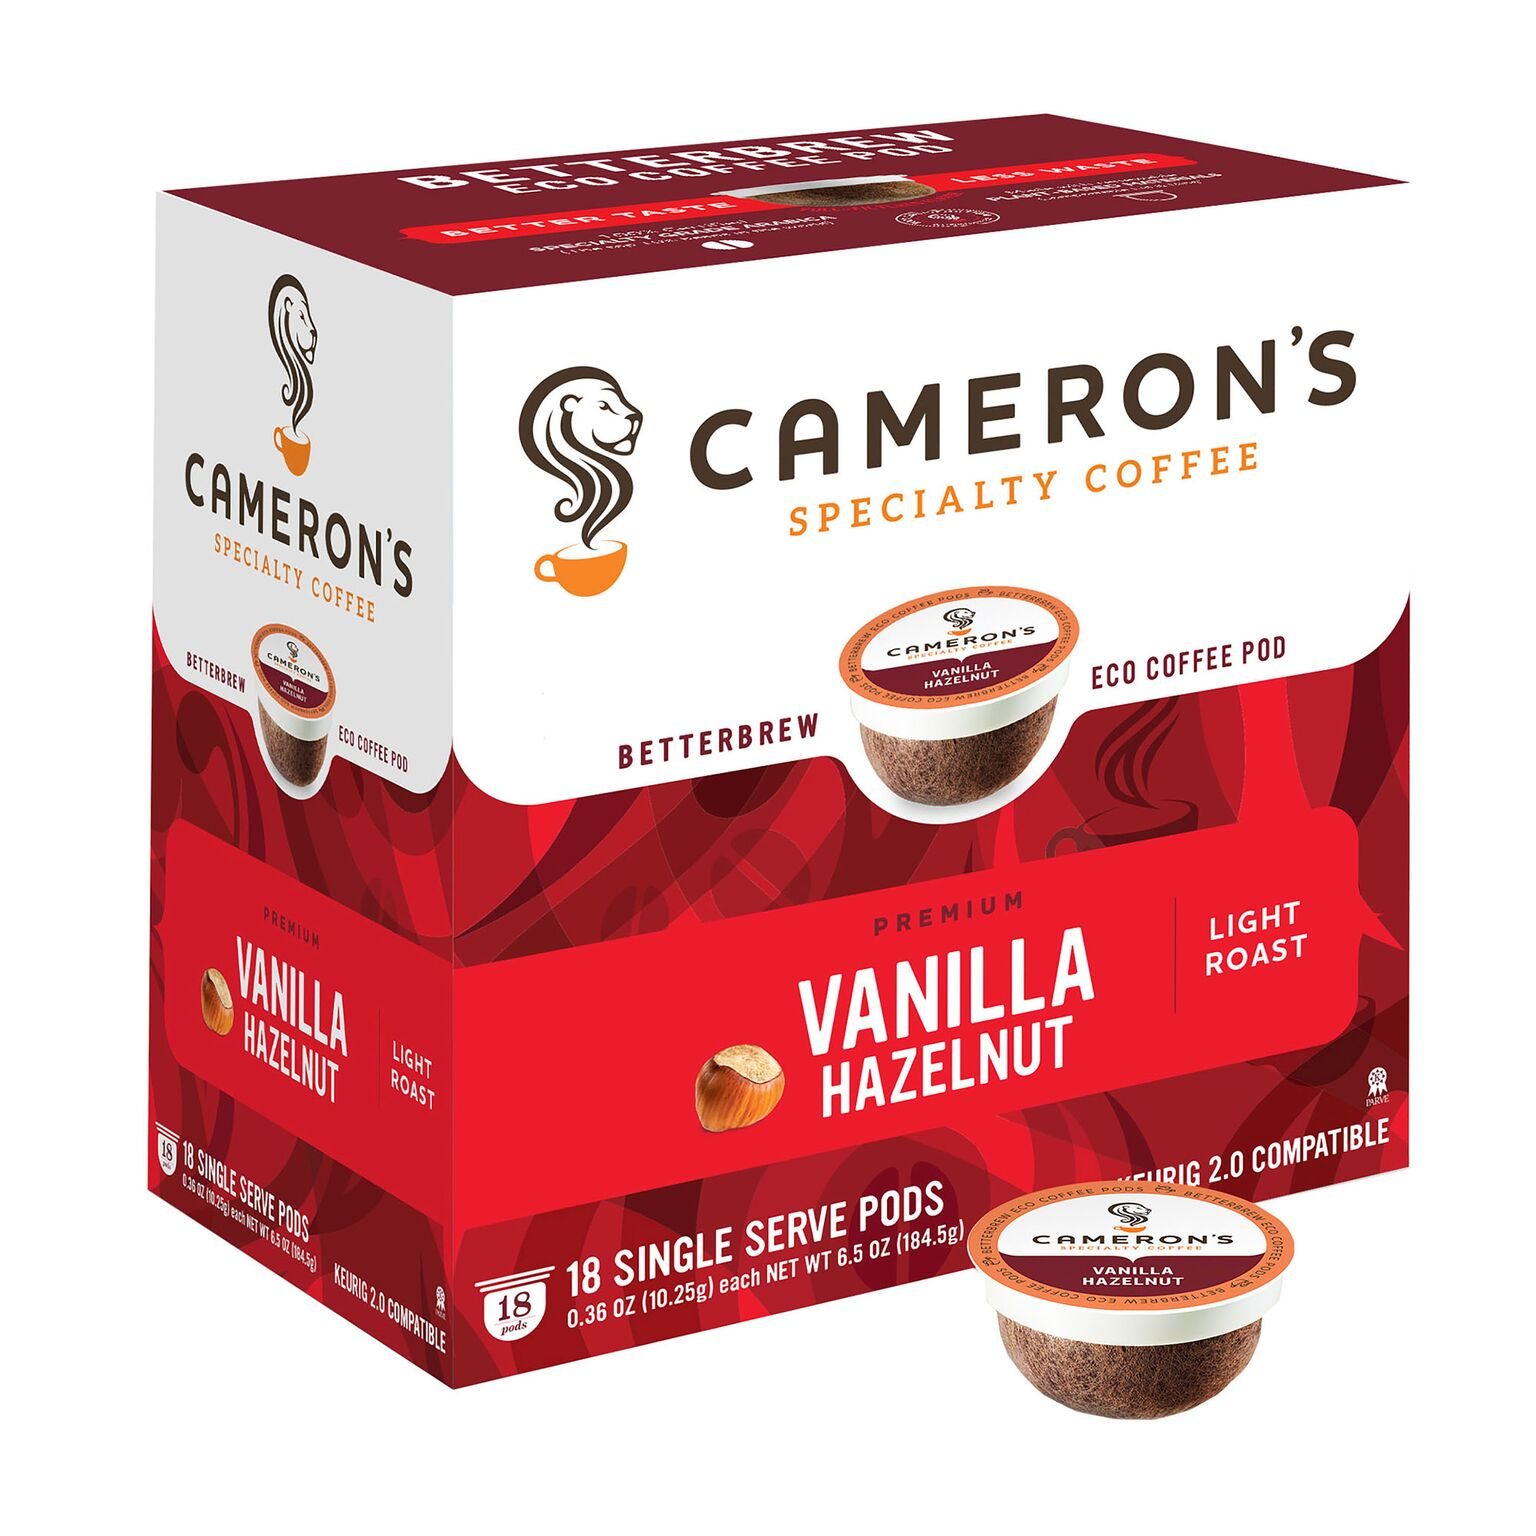 Cameron's Specialty Coffee Vanilla Hazelnut Single Serve Pods, 18 count